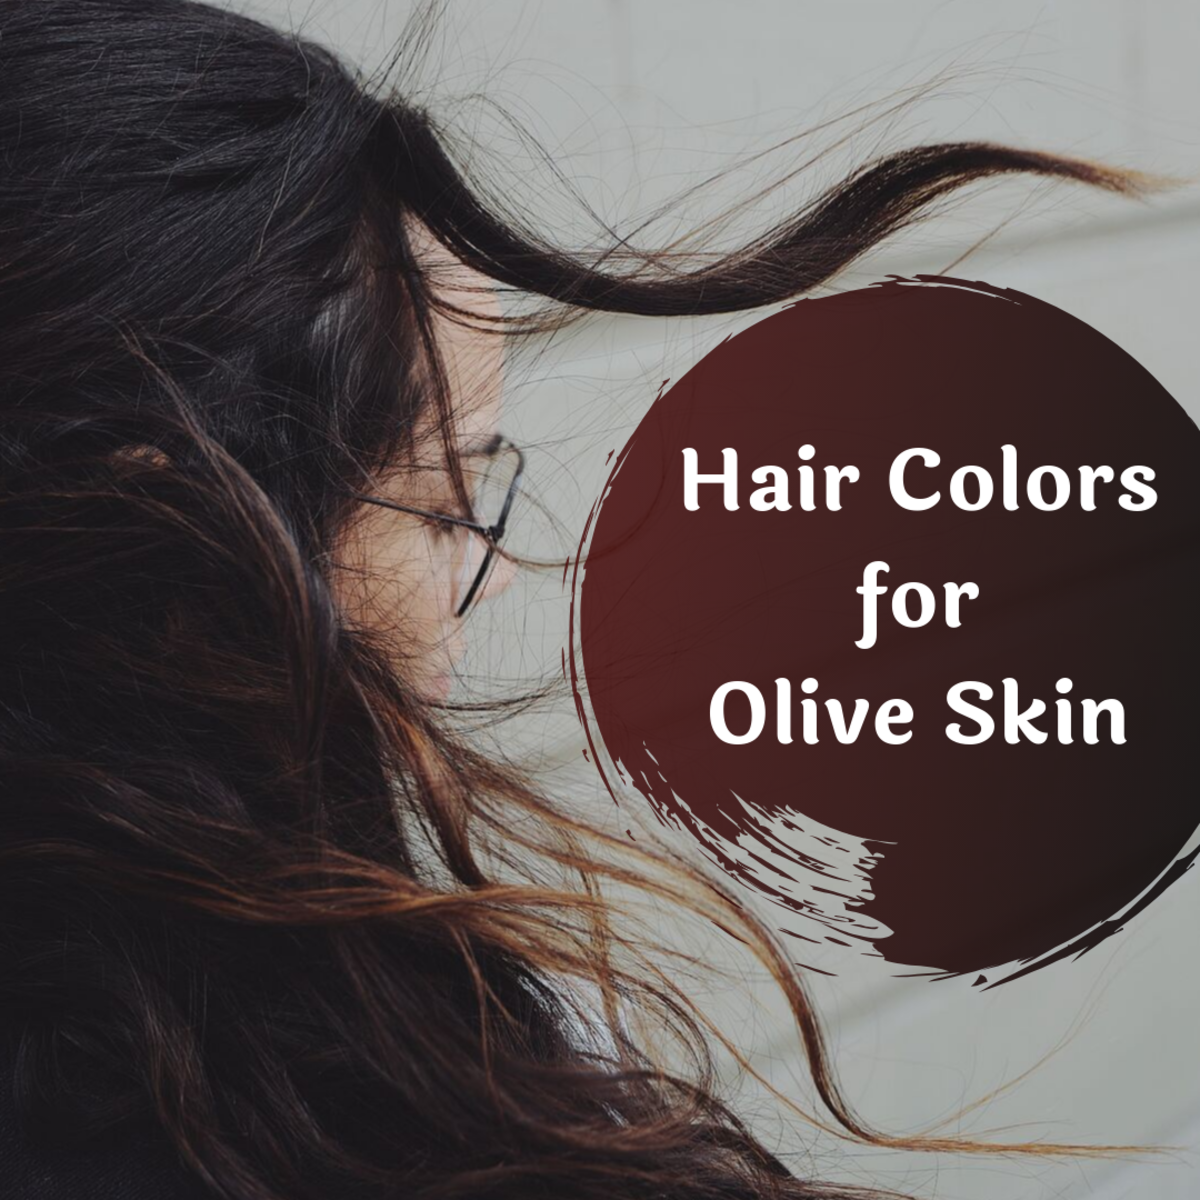 The Best Hair Colors for Olive Skin